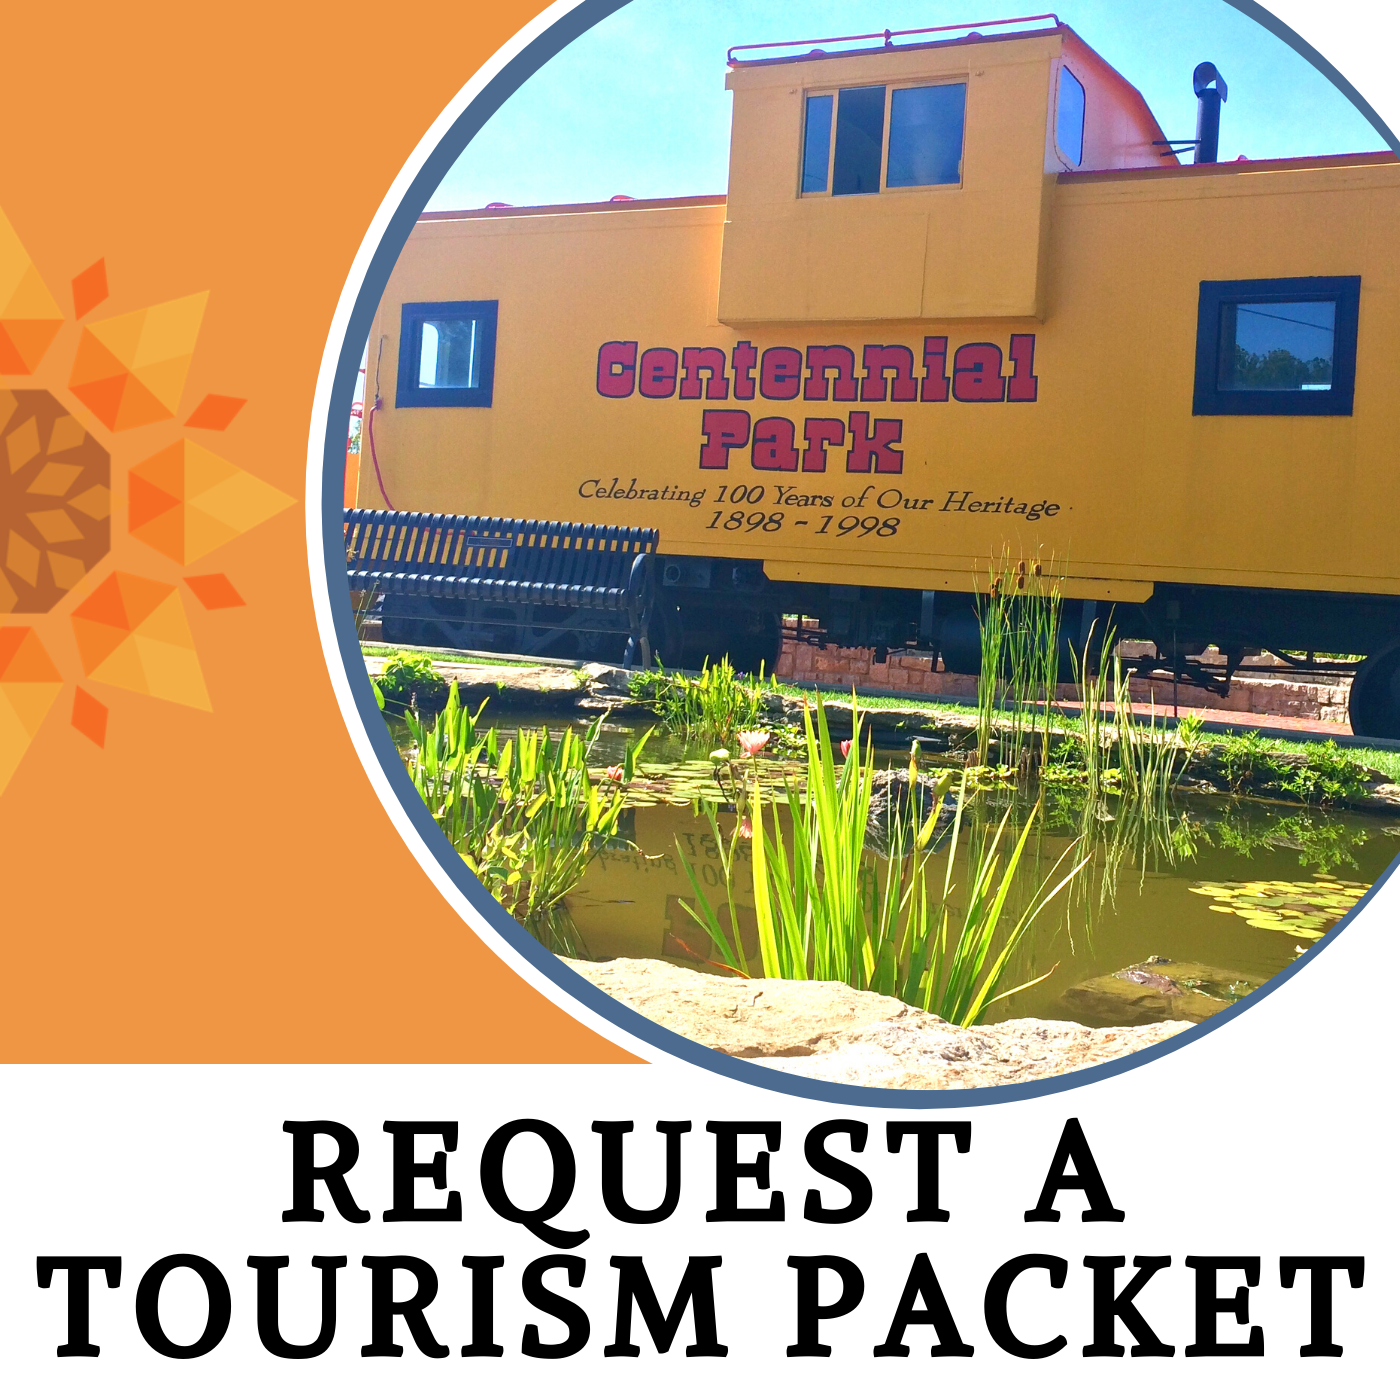 Request Tourism Packet